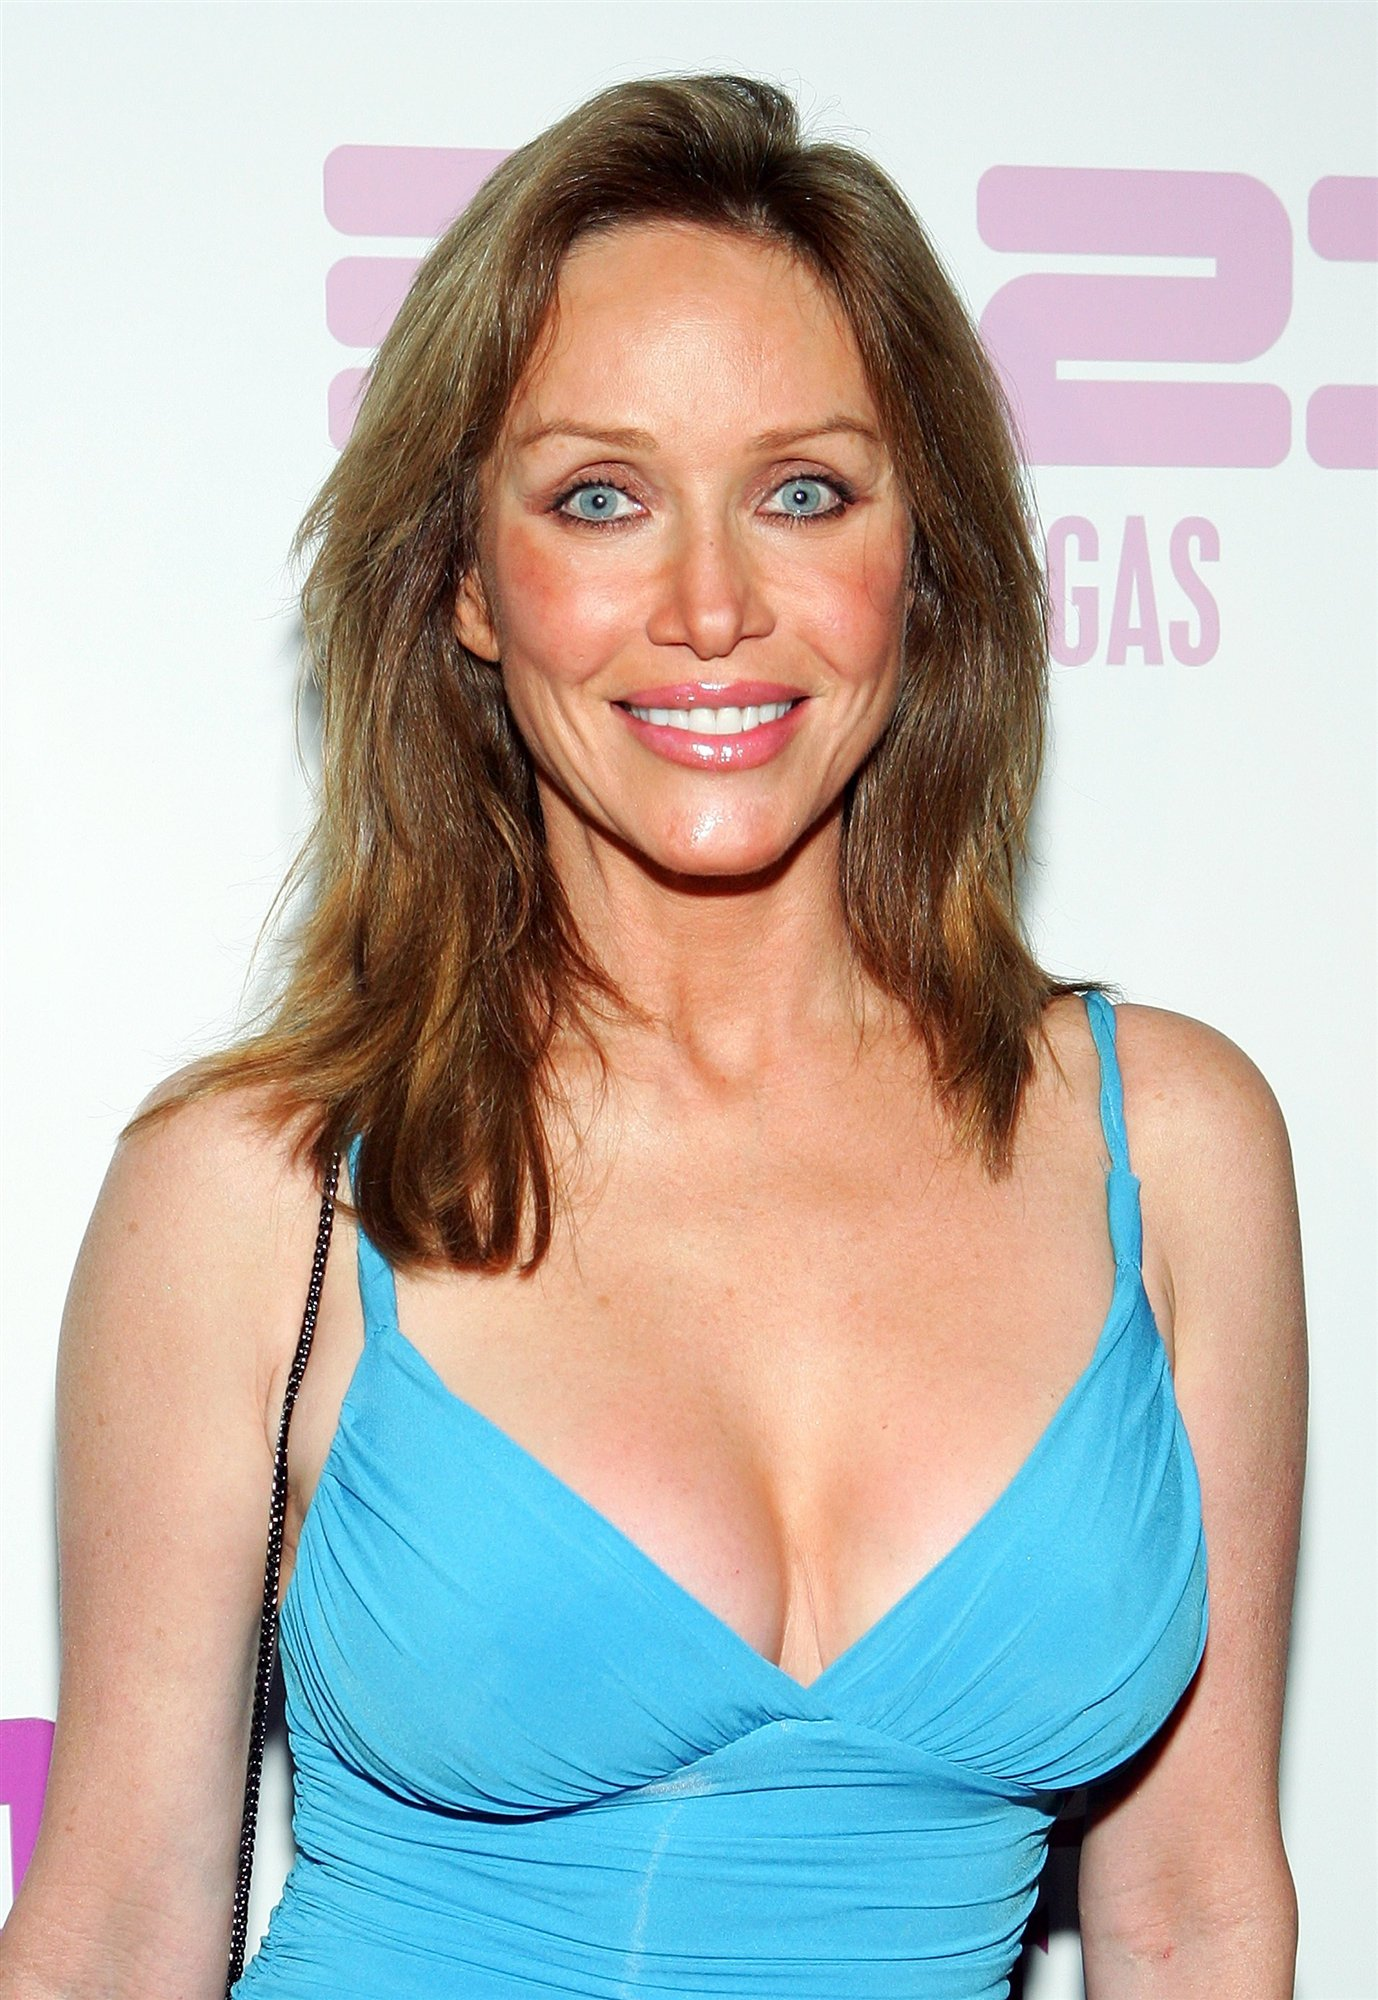 Tanya Roberts - Actor - CineMagia.ro: www.cinemagia.ro/actori/tanya-roberts-2210